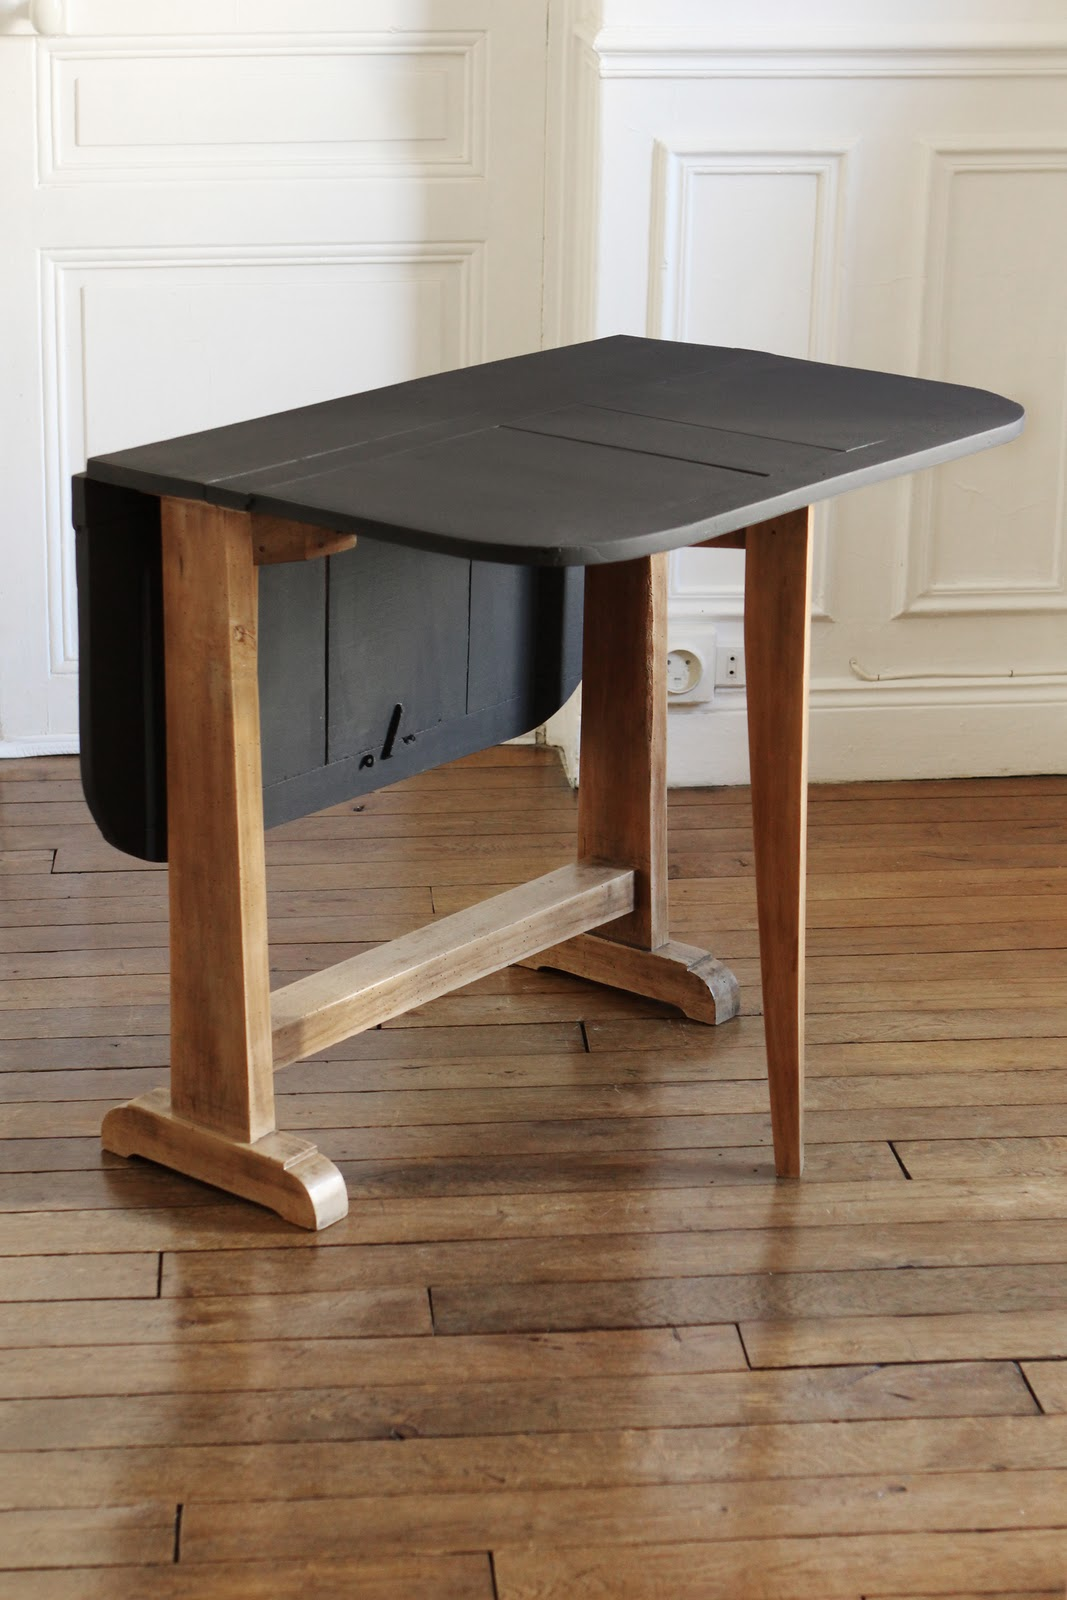 De derri re les fagots la table manger pliante 300 - Table a manger pliable ...